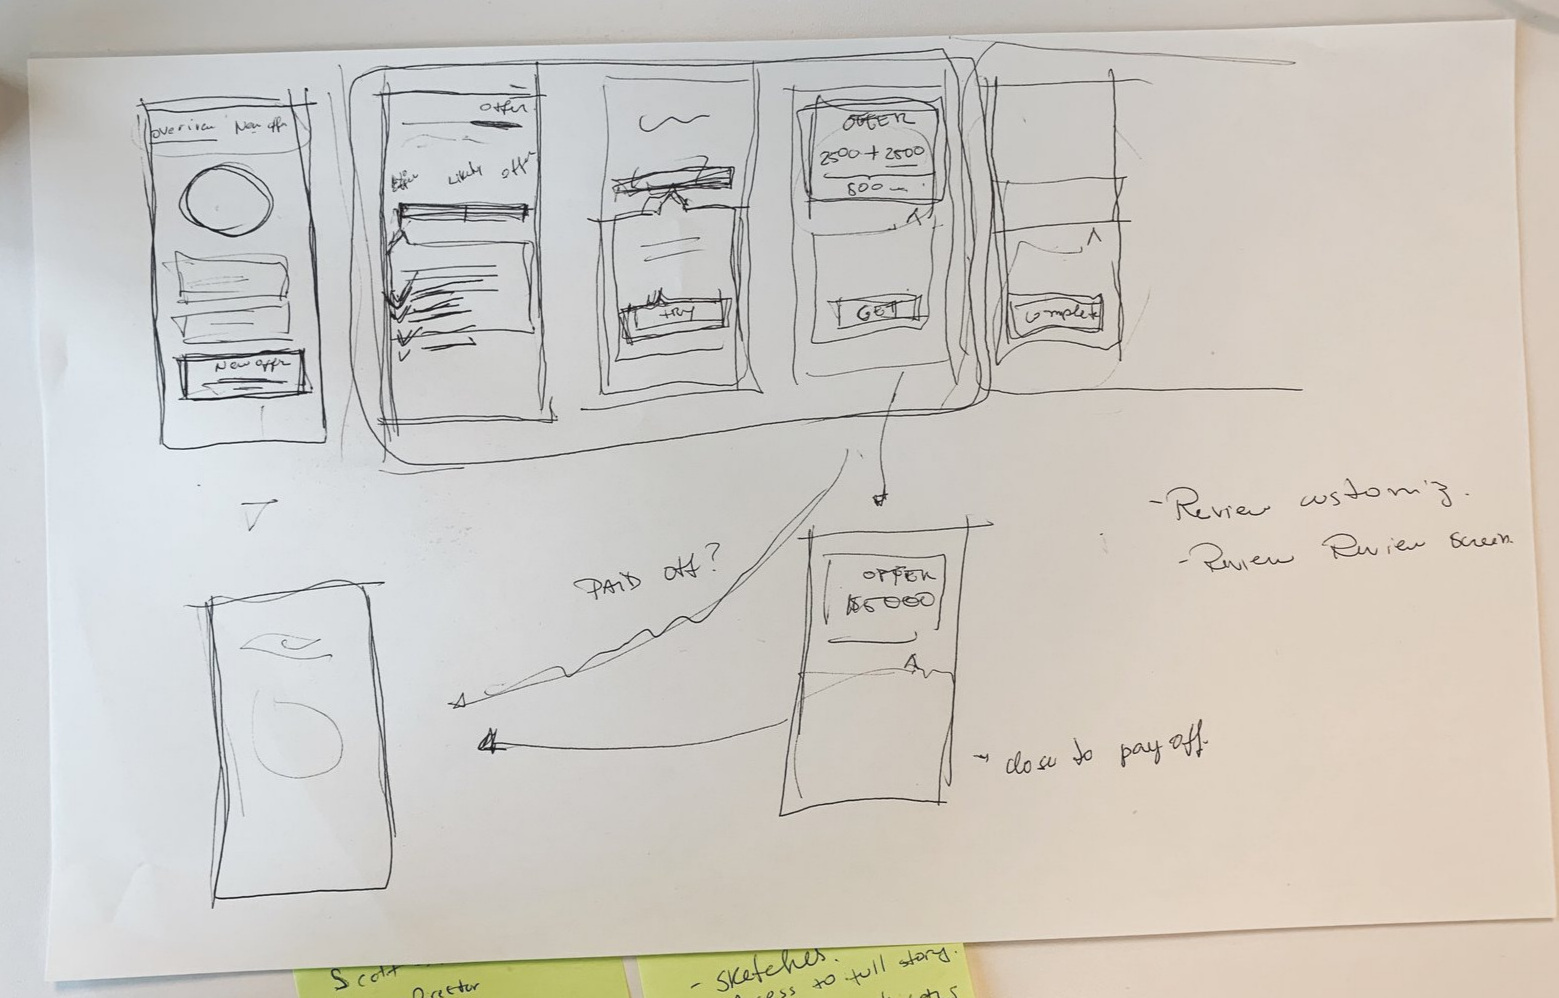 Left side sketch: working on ideas of application status,